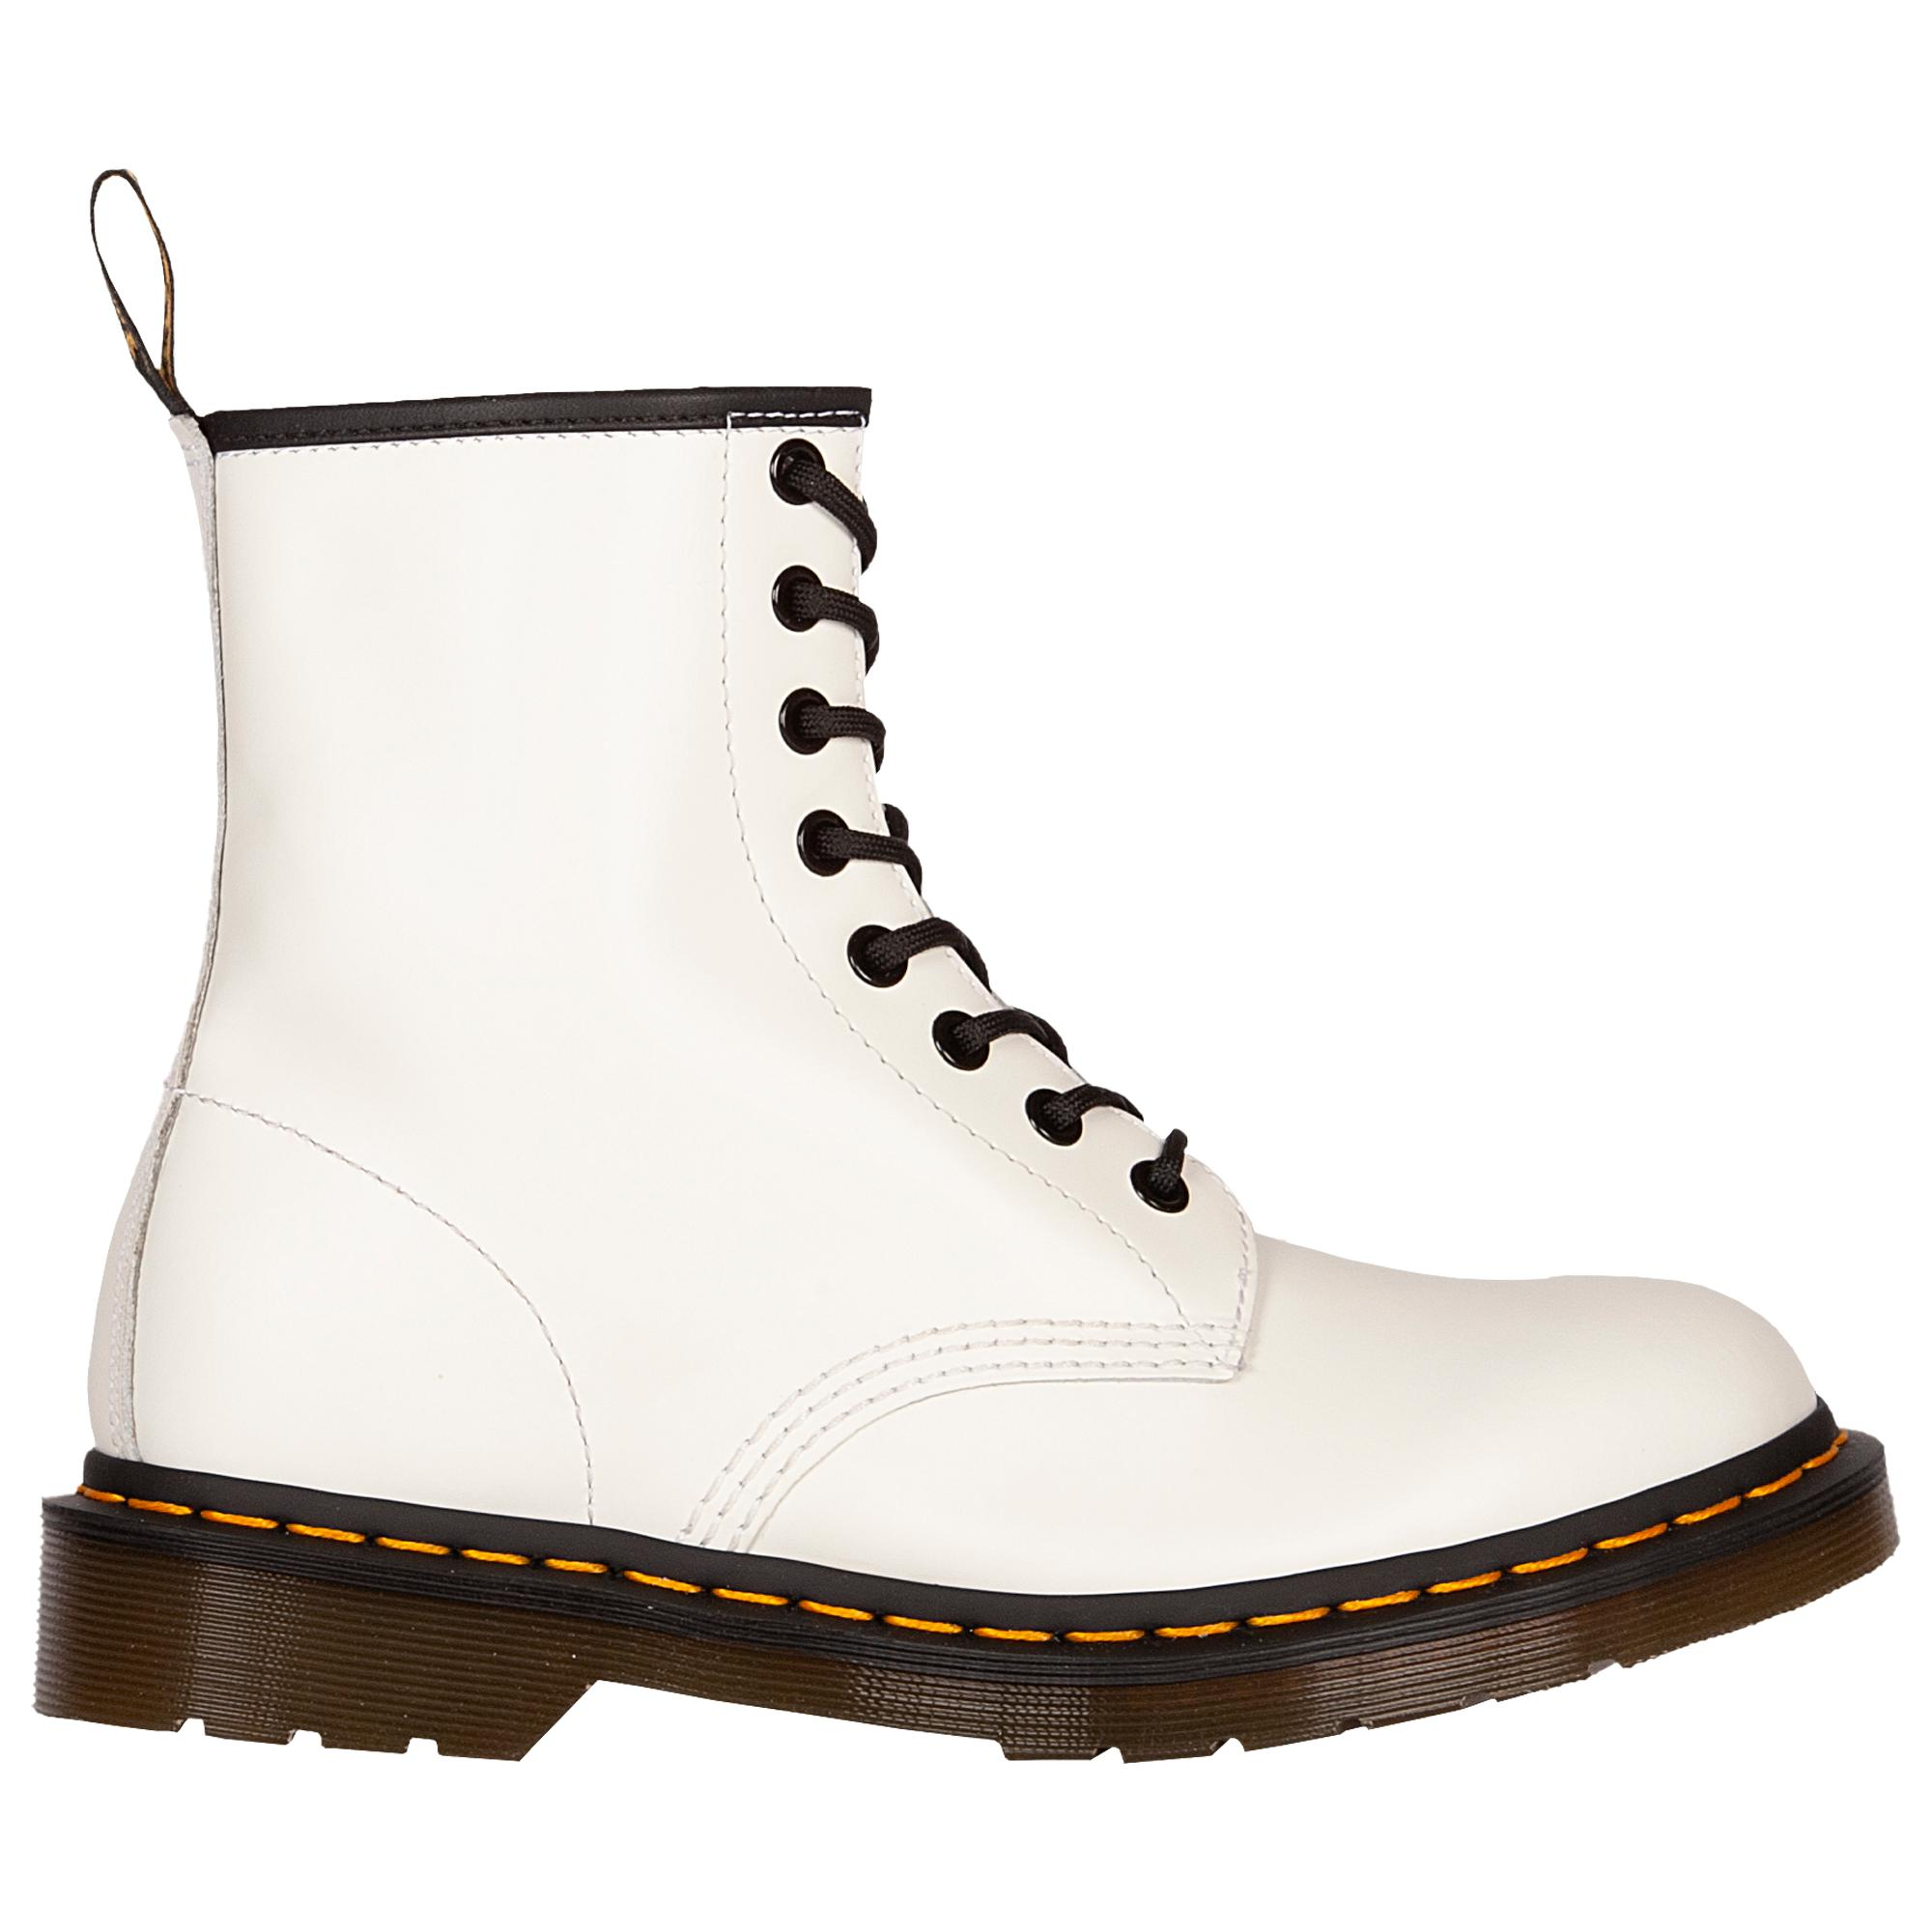 Lyst - Dr. Martens Pascal Leather in White 961336e5f